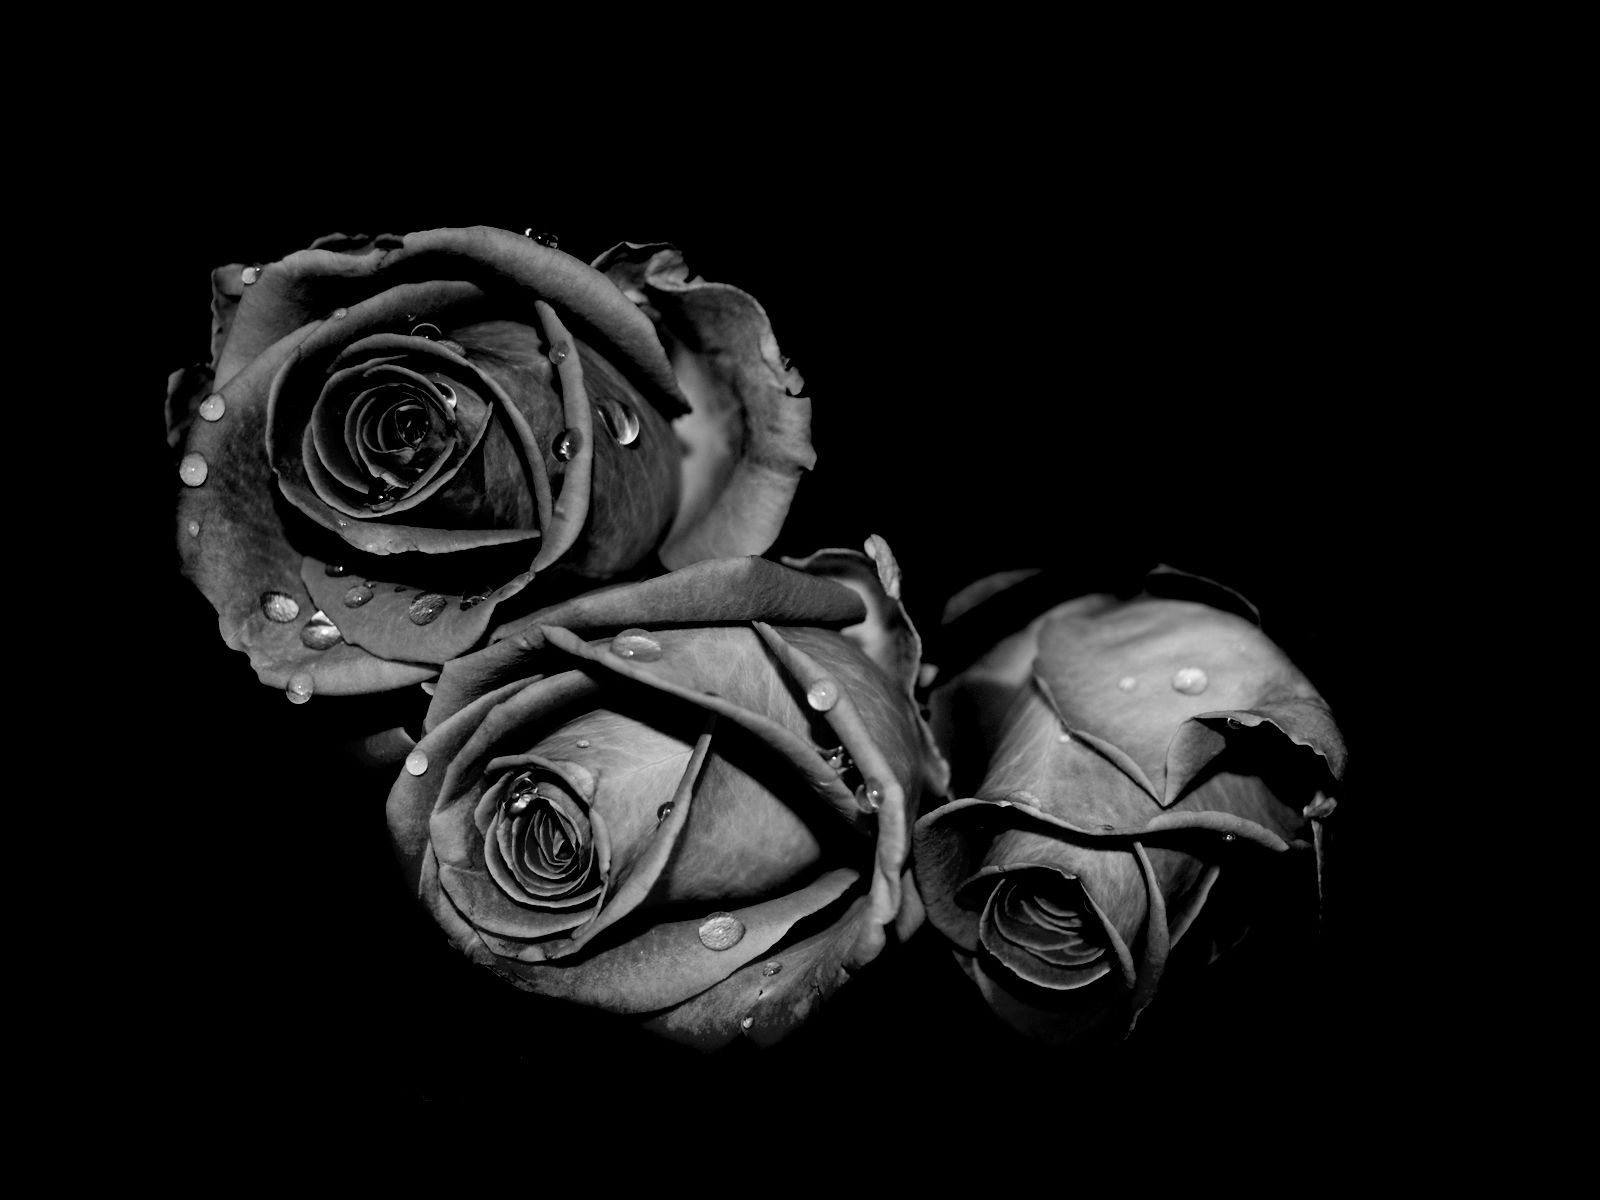 fading black roses world desktop photography wallpaper collection